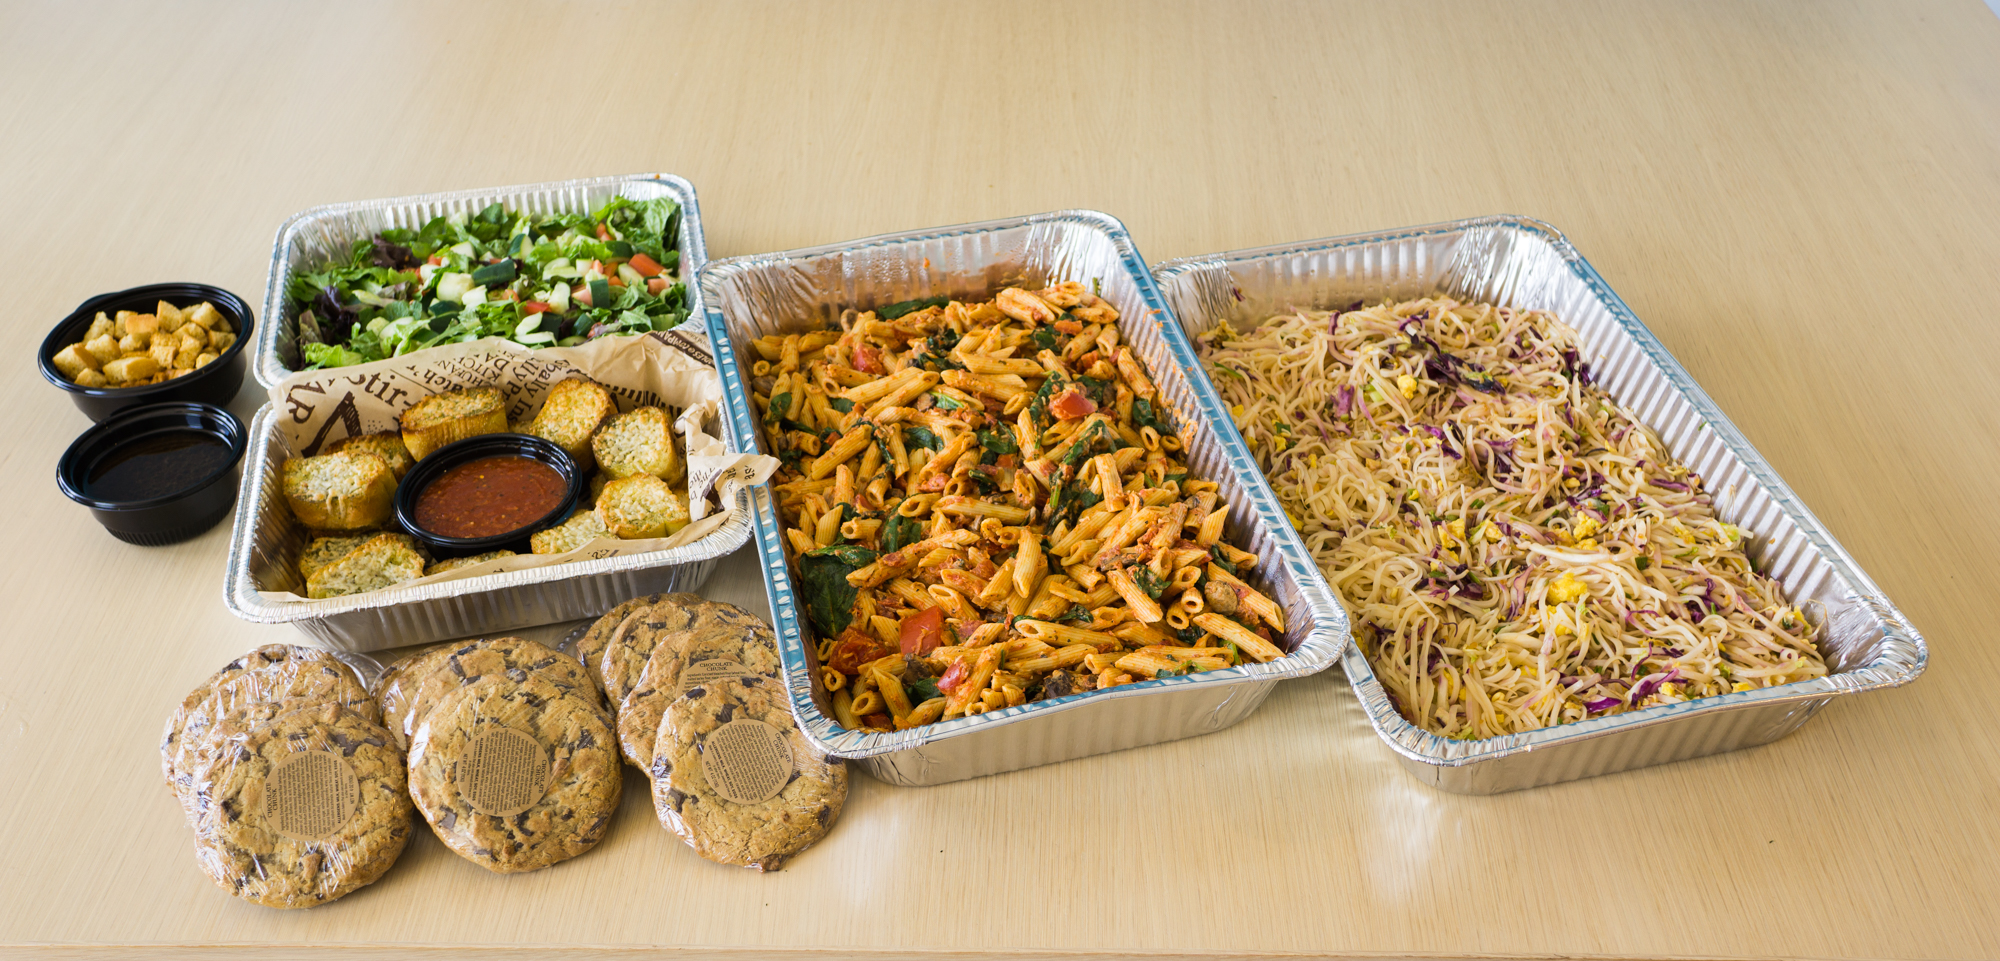 Whether you want a filling breakfast or lunch platter, it's easy to find delicious catering options from Noodles World Kitchen.